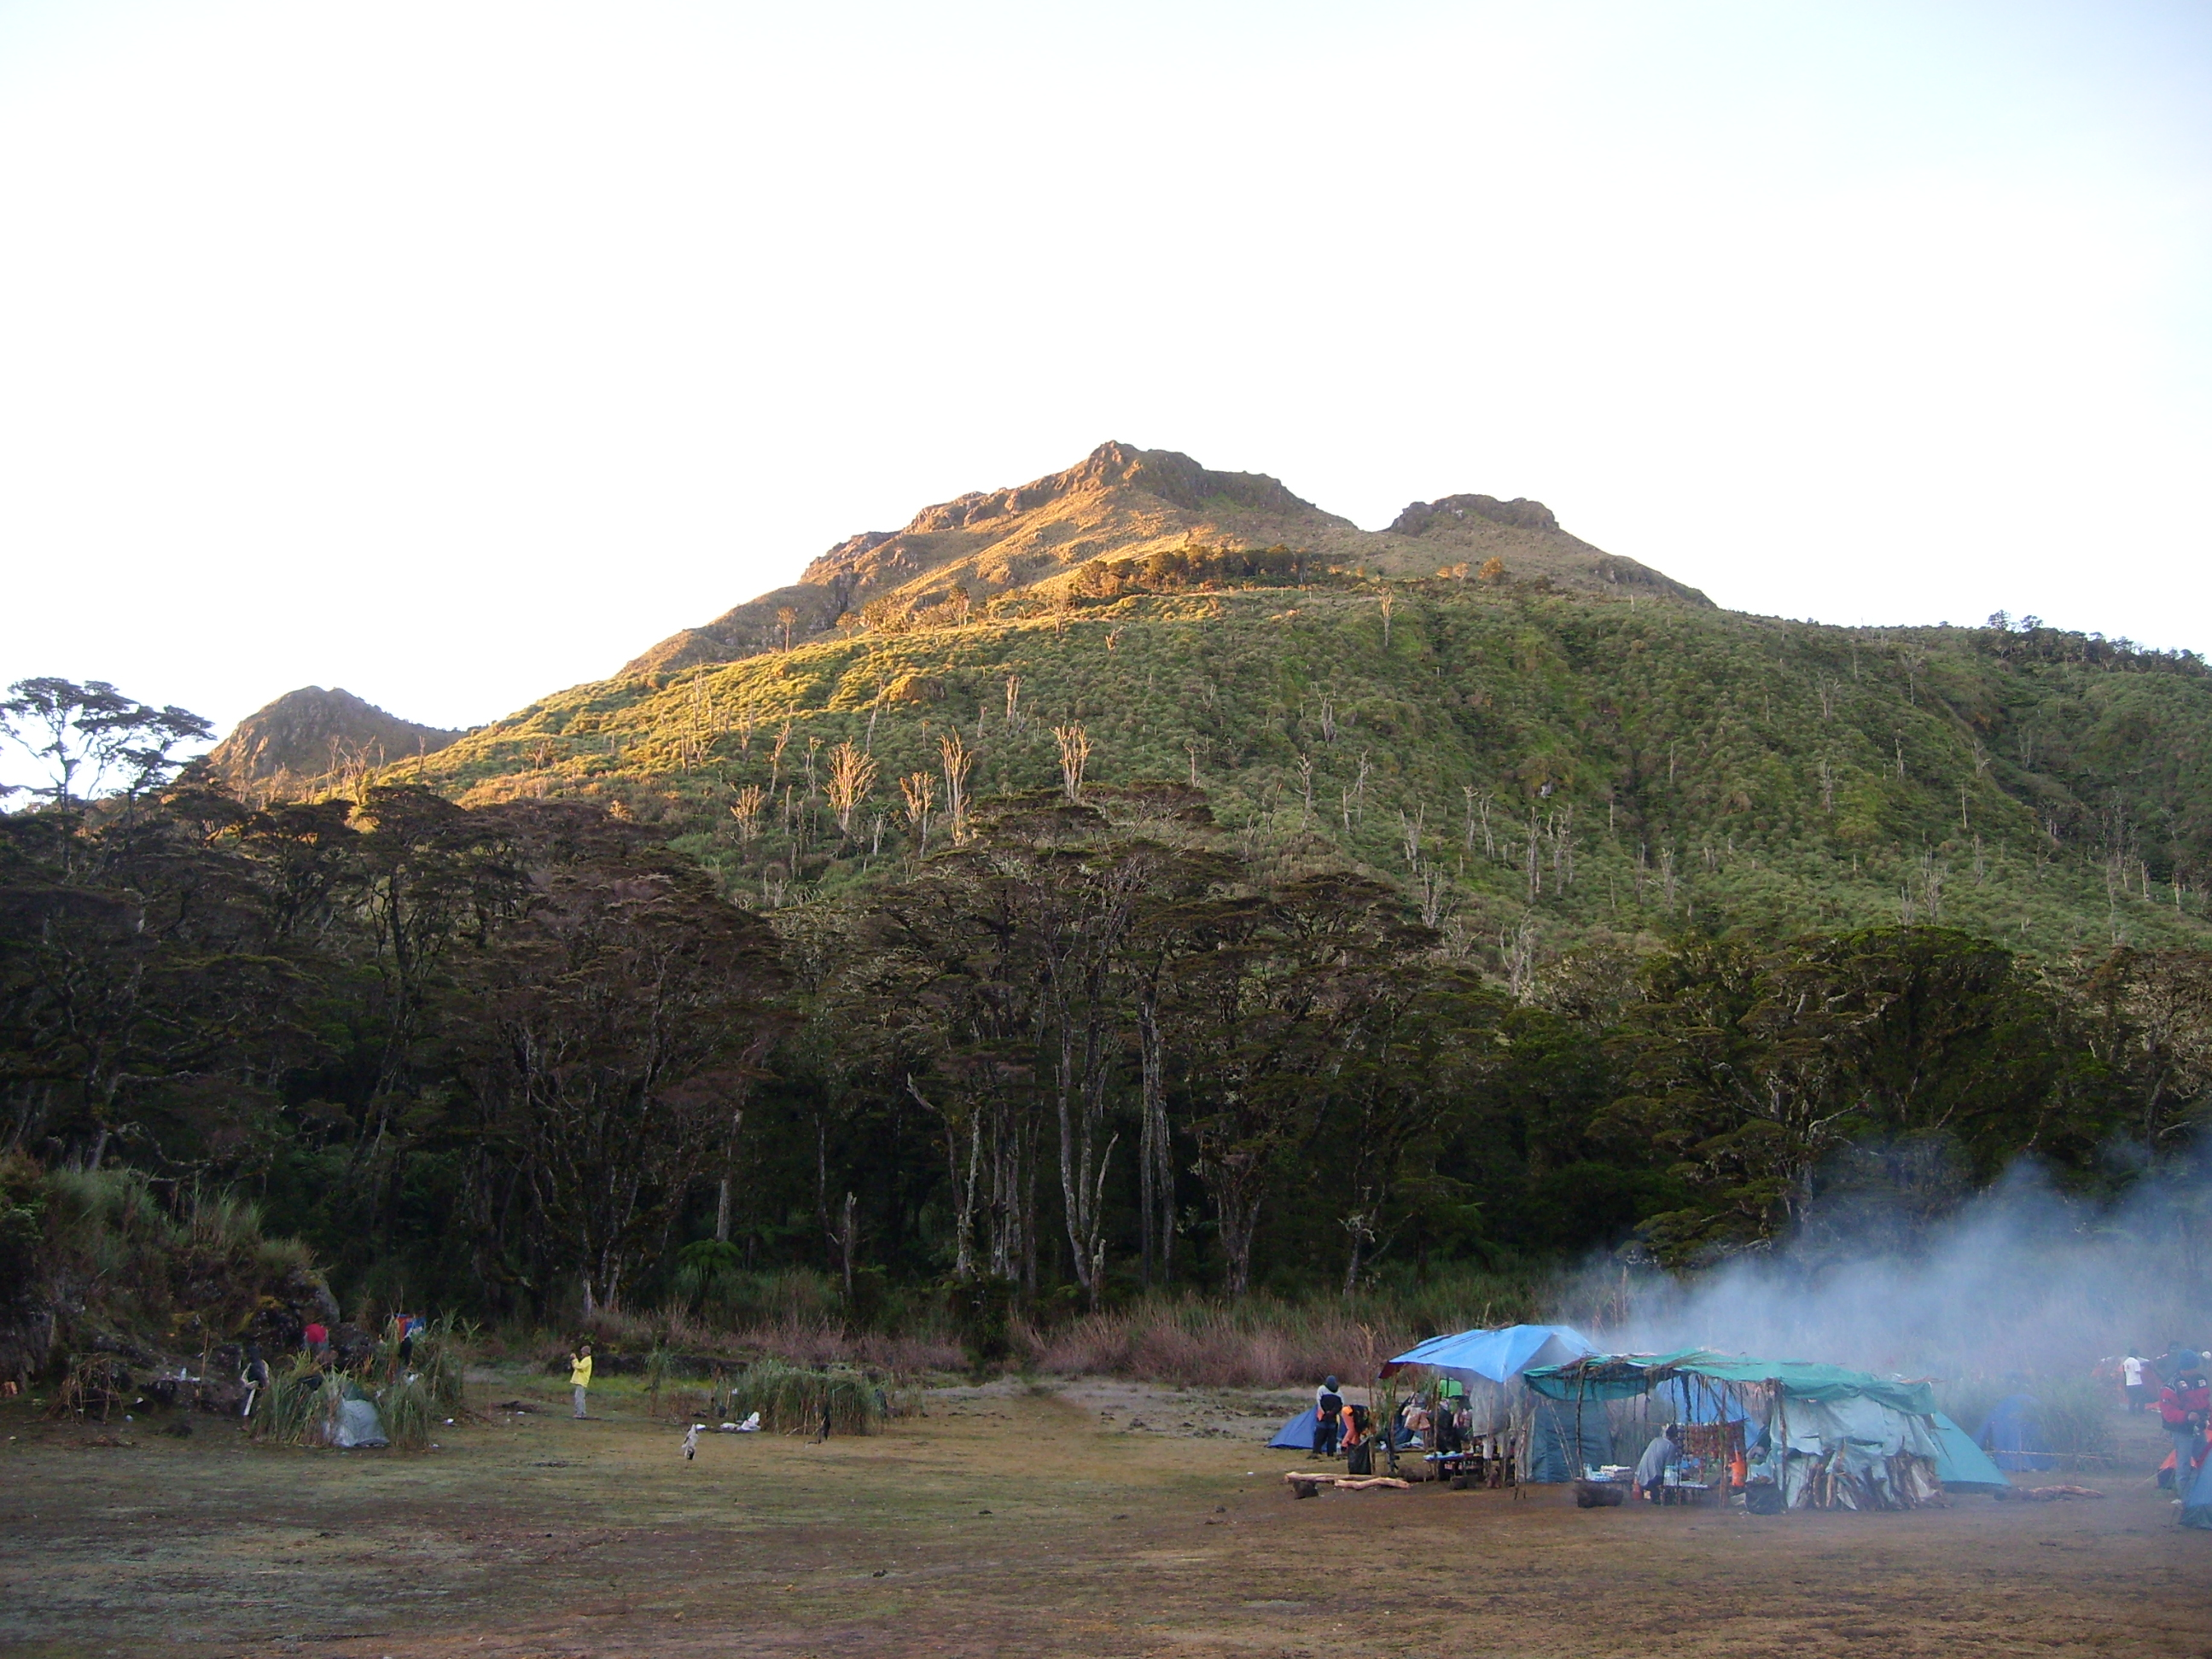 Mount Apo. (Photo by Kleomarlo/Wikipedia)